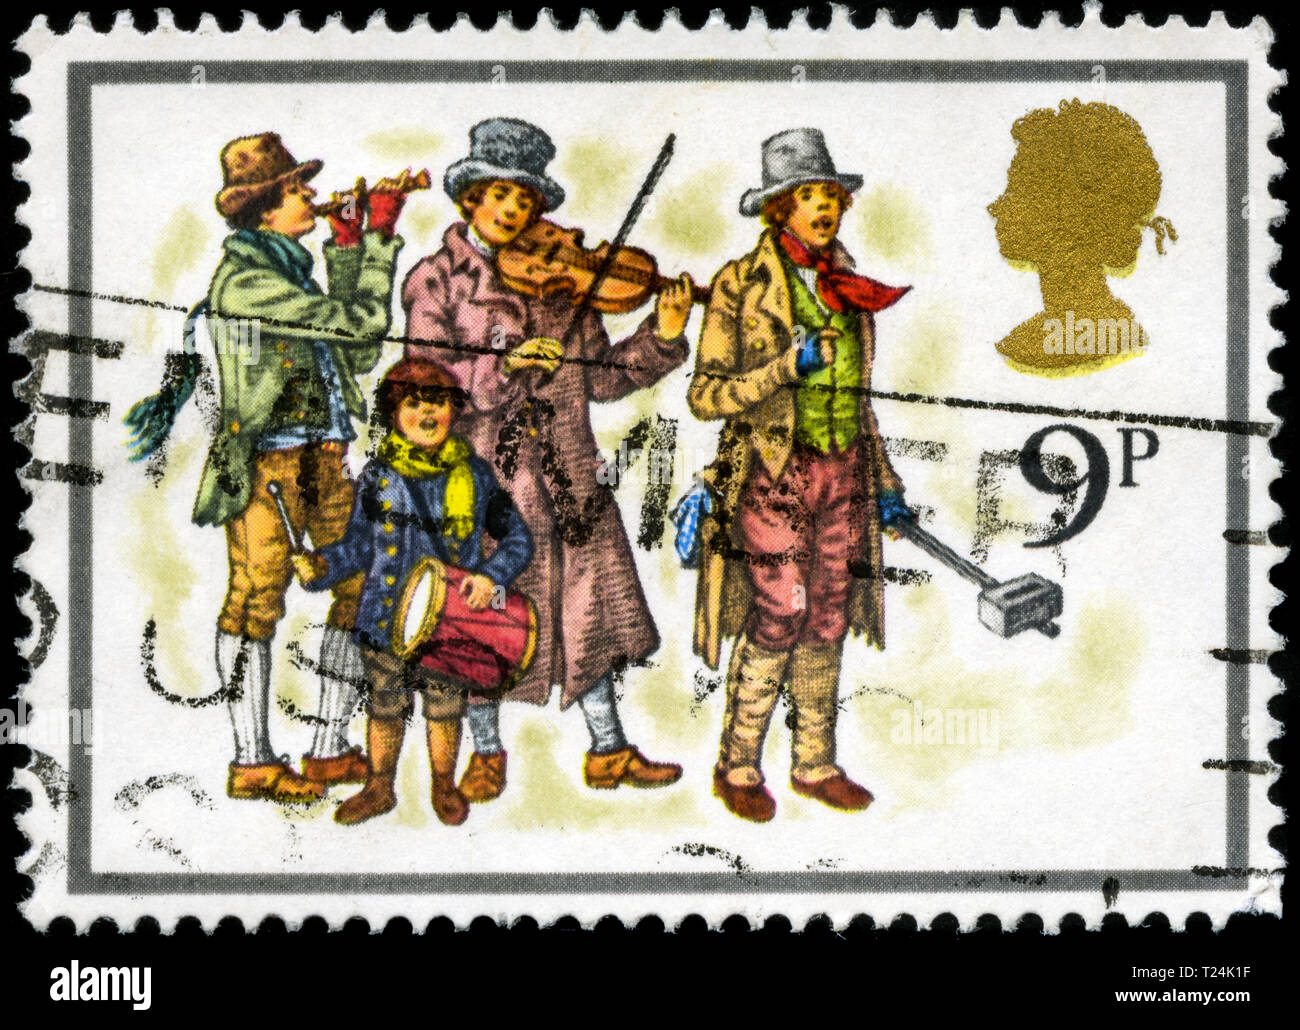 Postage stamp from the United Kingdom and Northern Ireland in the Christmas 1978 - Carol Singers series - Stock Image